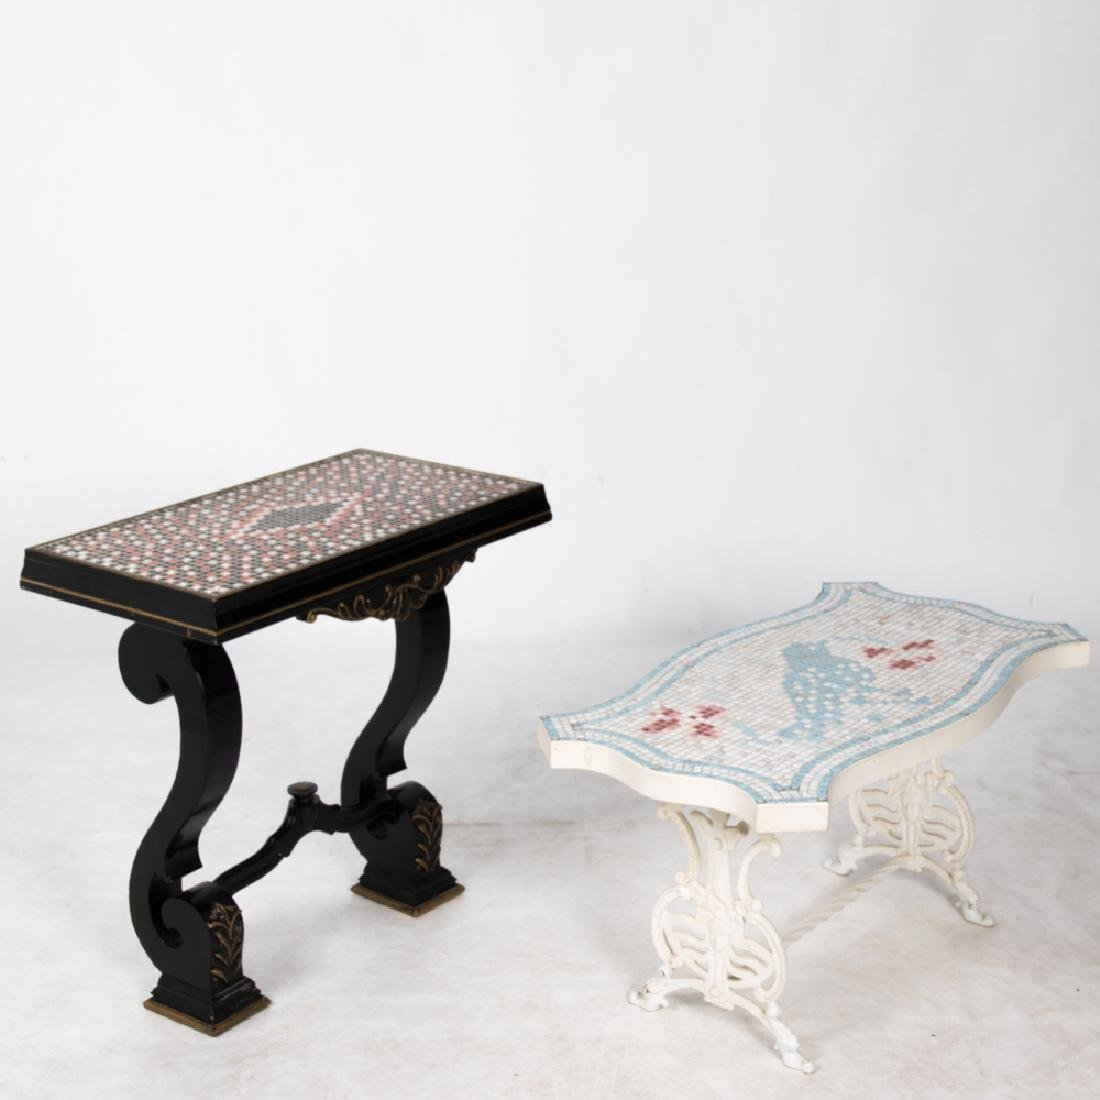 A Painted Wrought Metal and Mosaic Low Table, 20th